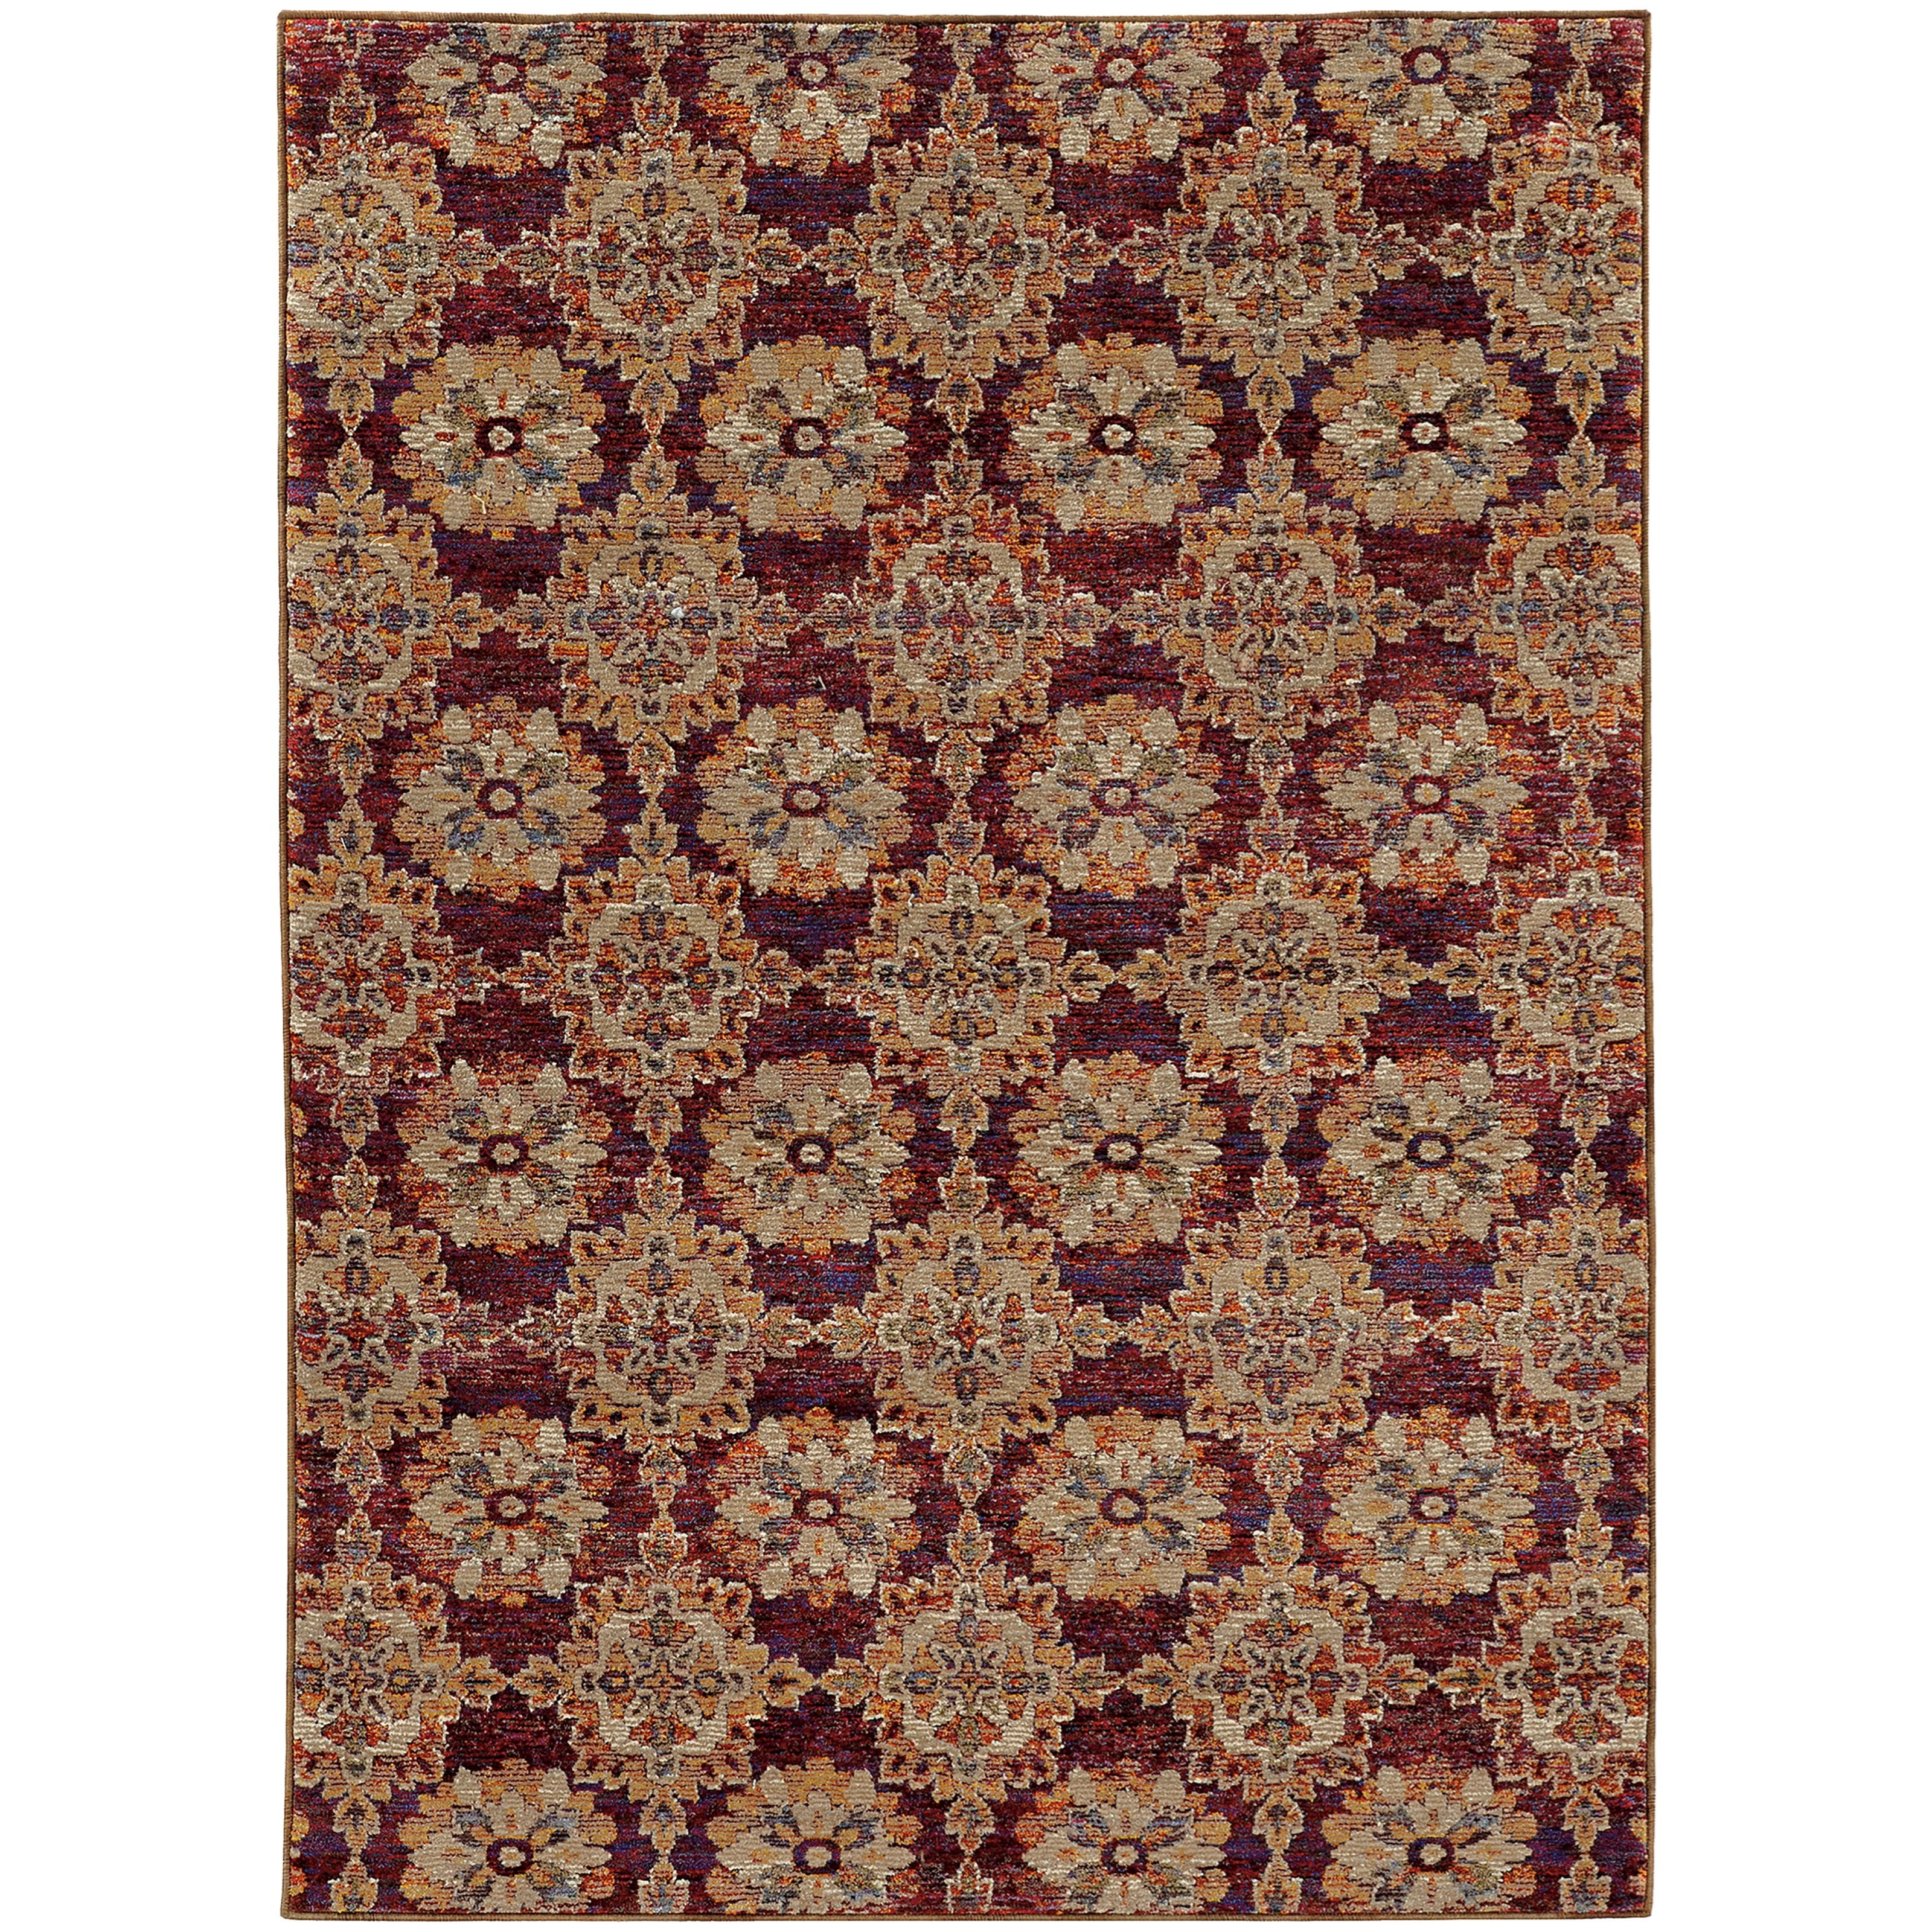 "Andorra 6' 7"" X  9' 6"" Casual Red/ Gold Rectangle Ru by Oriental Weavers at Steger's Furniture"